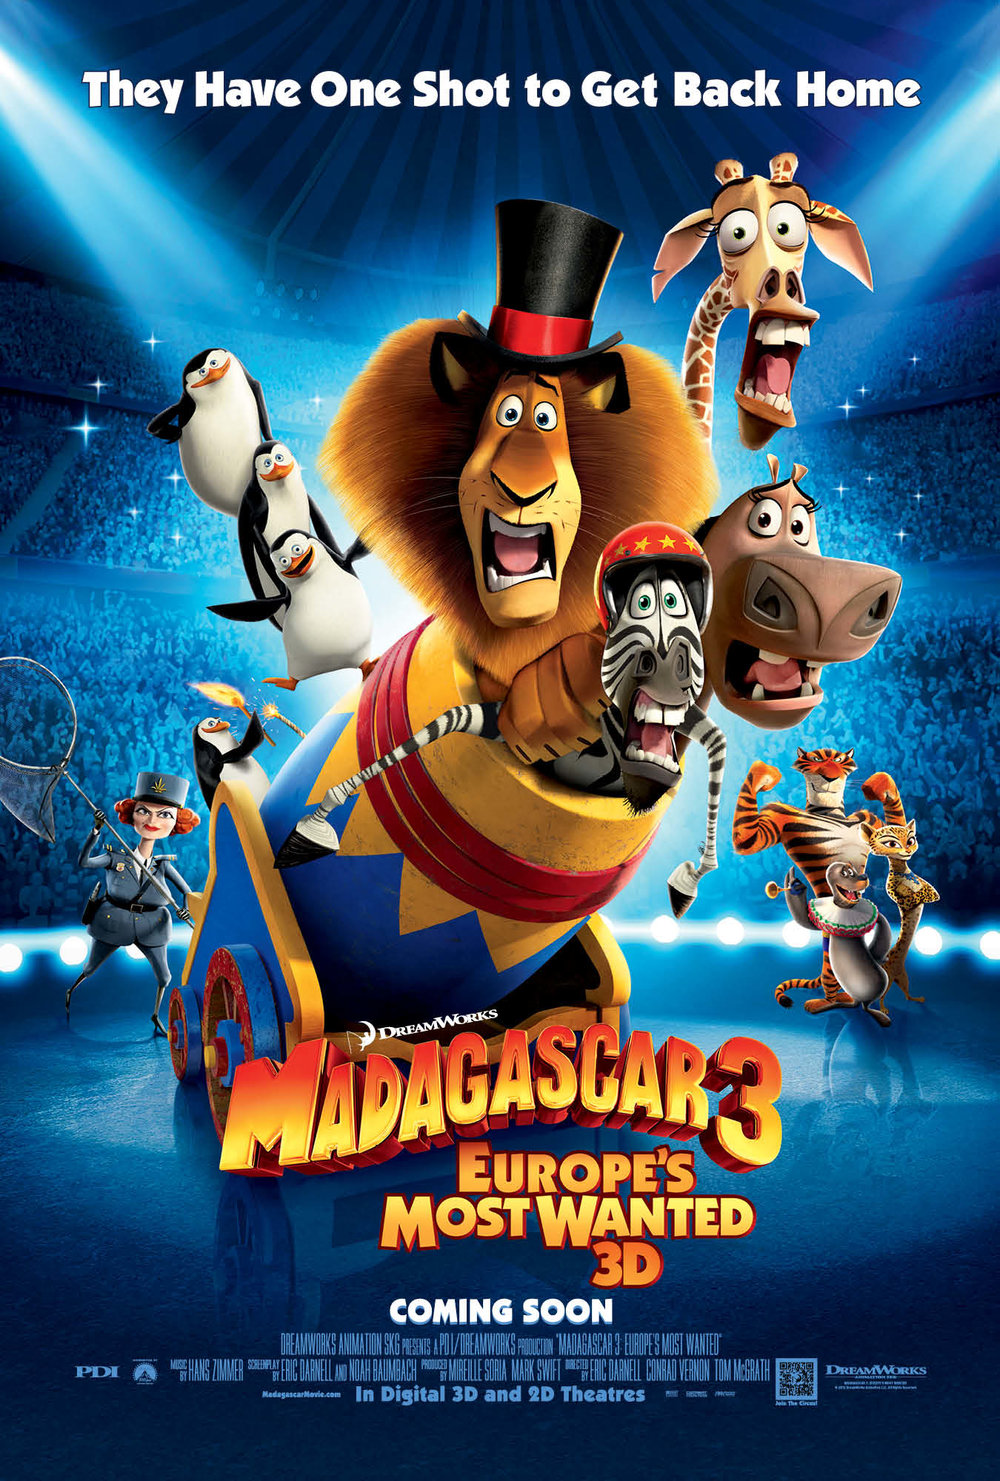 MADAGASCAR 3: EUROPE'S MOST WANTED - Music by Hans ZimmerAssistant Music Editing by Jessica Weiss